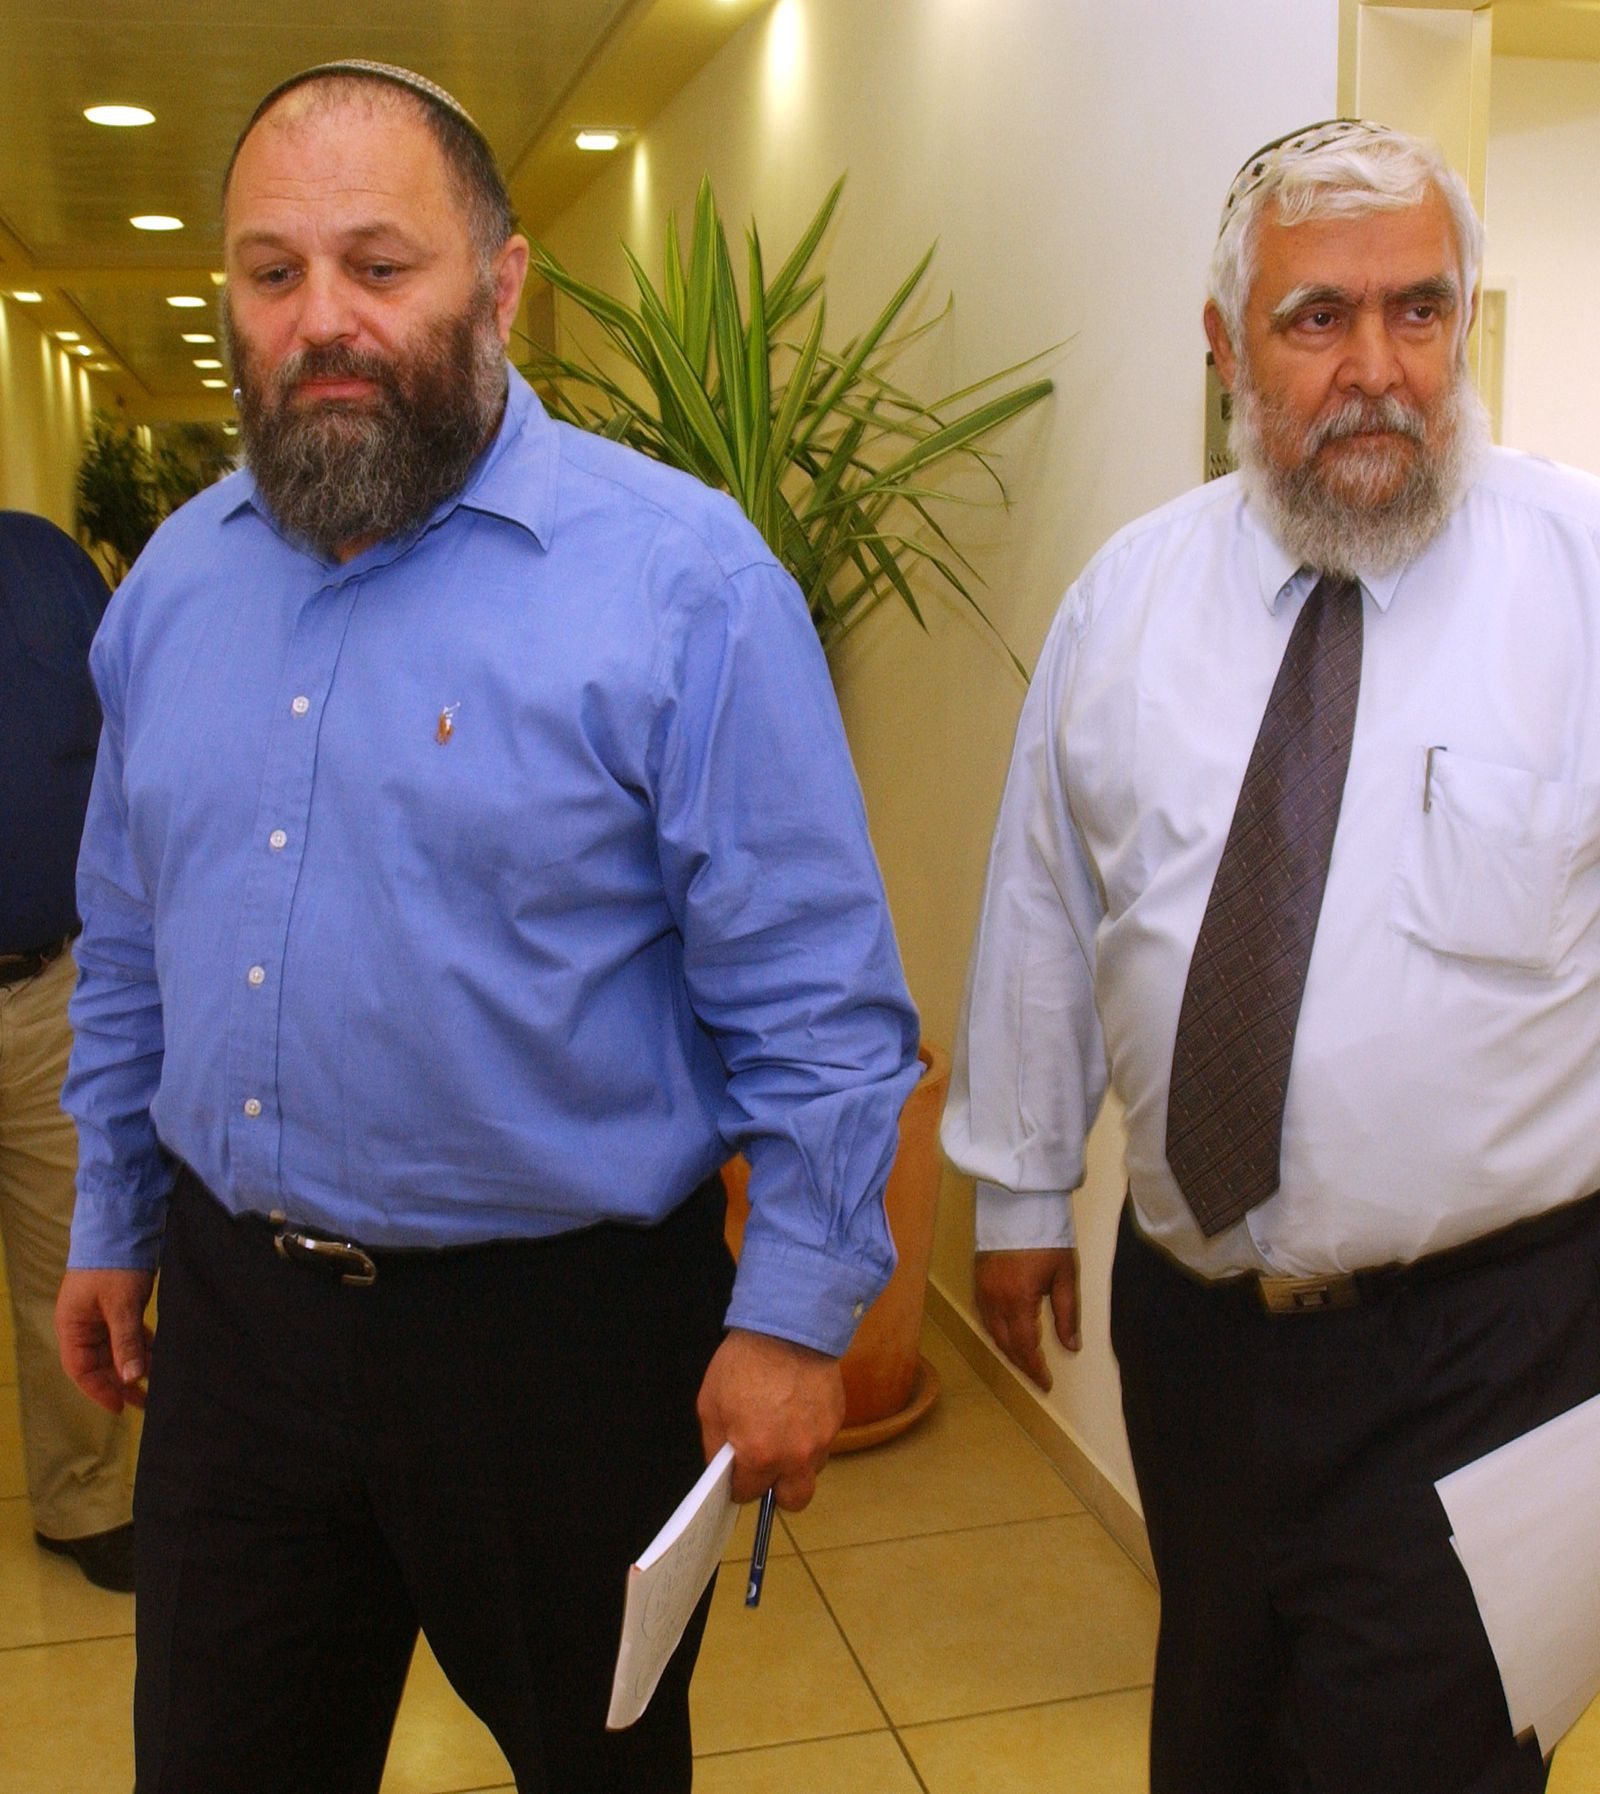 HOUSING MINISTER EFFI EITAM AND DEPUTY MINISTER YITZHAK LEVY LEAVE A PRESS CONFERENCE IN JERUSALEM.